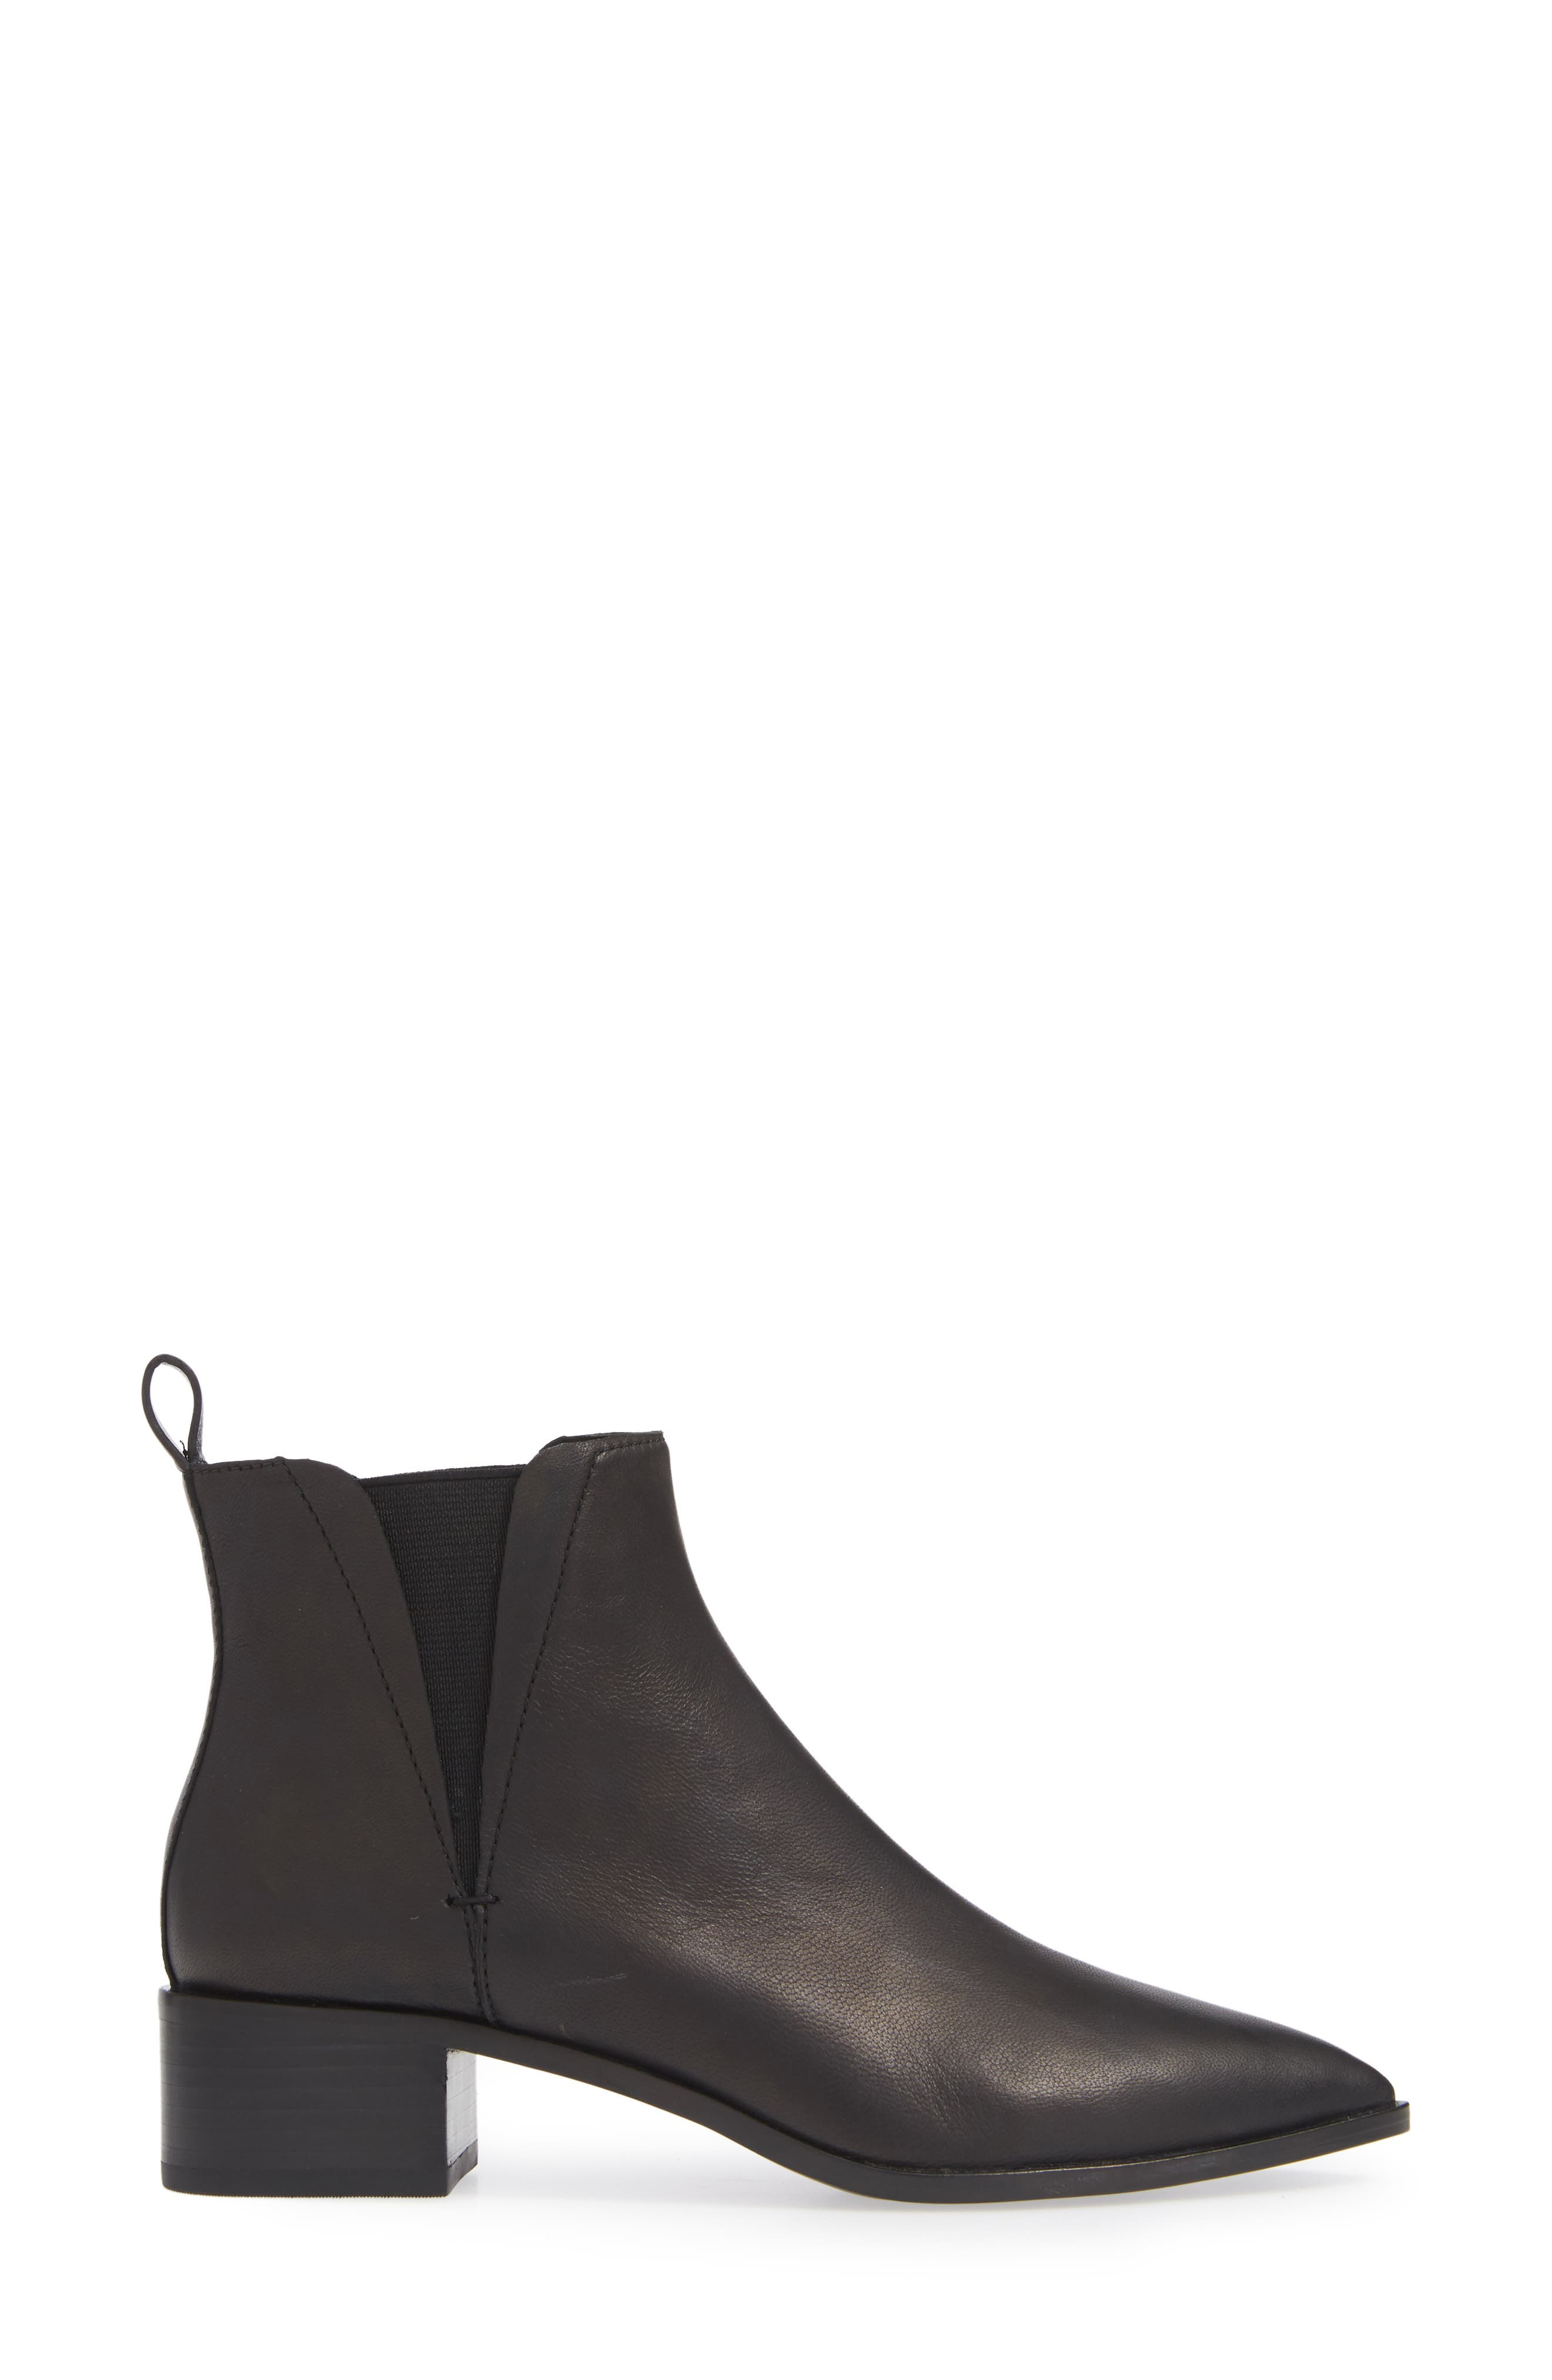 Taylor Bootie,                             Alternate thumbnail 3, color,                             BLACK LEATHER